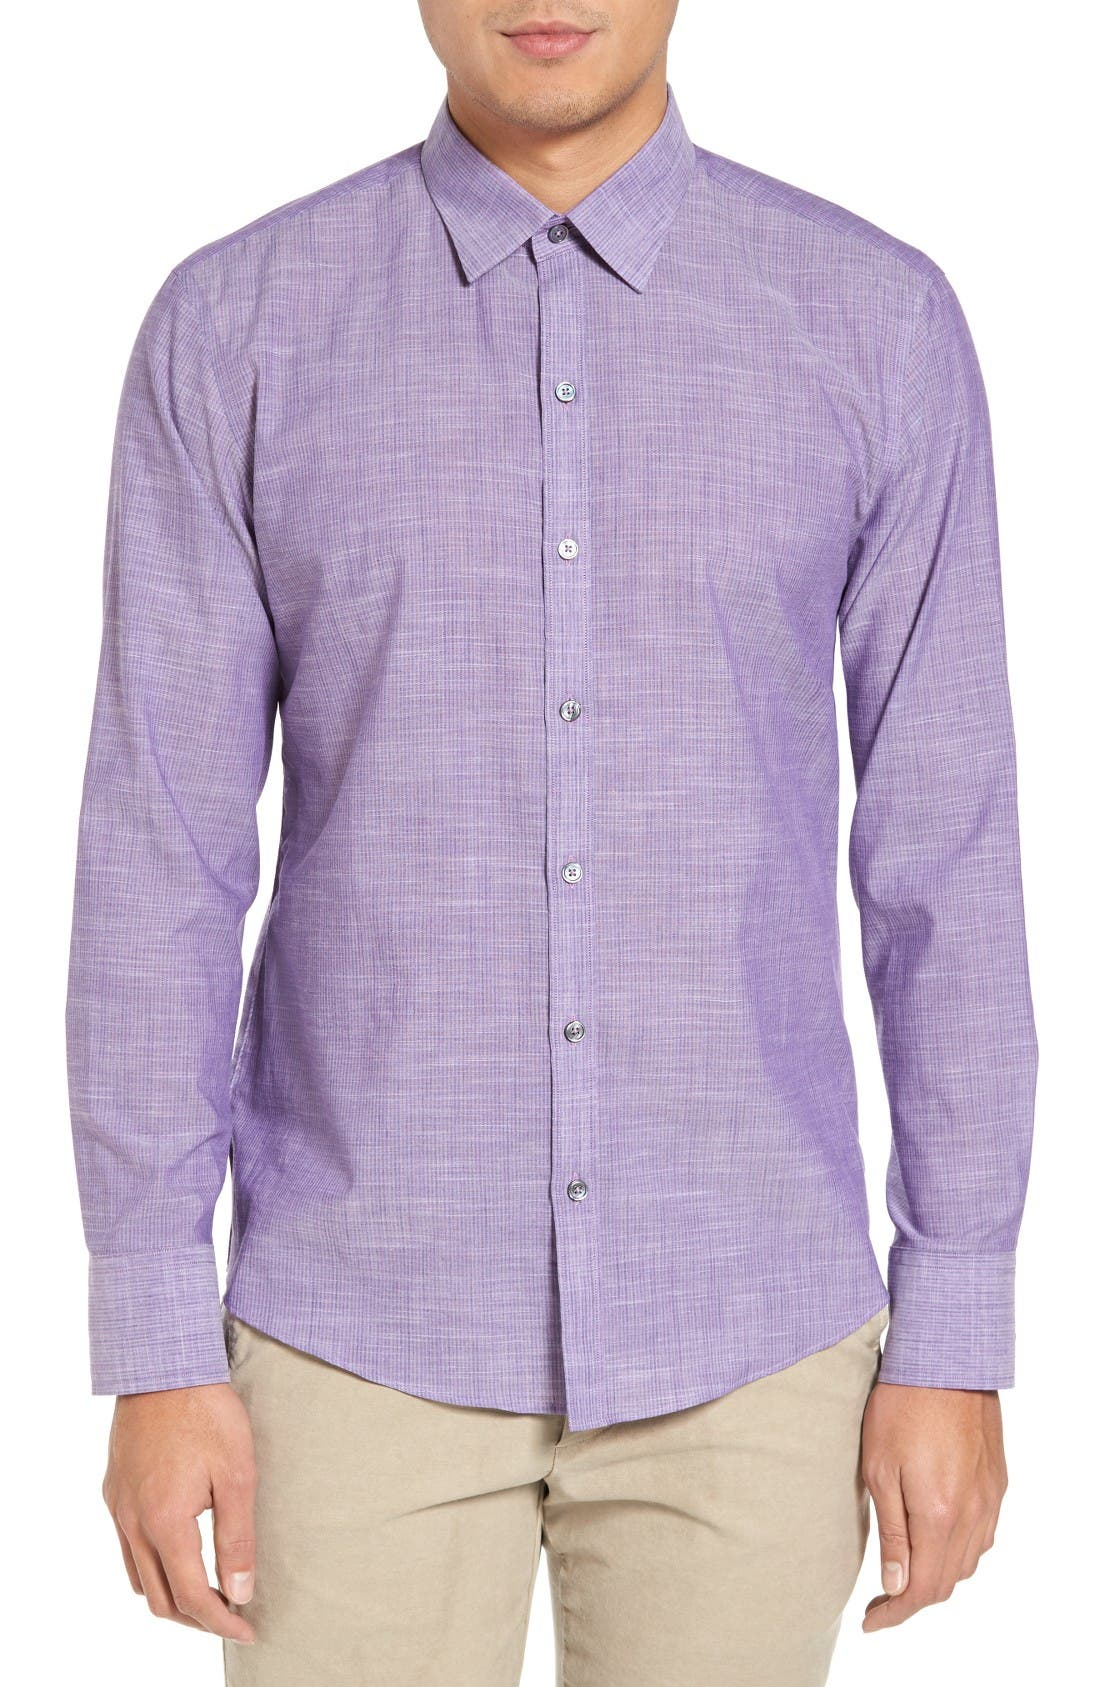 Snower Slim Fit Sport Shirt,                         Main,                         color, Purple